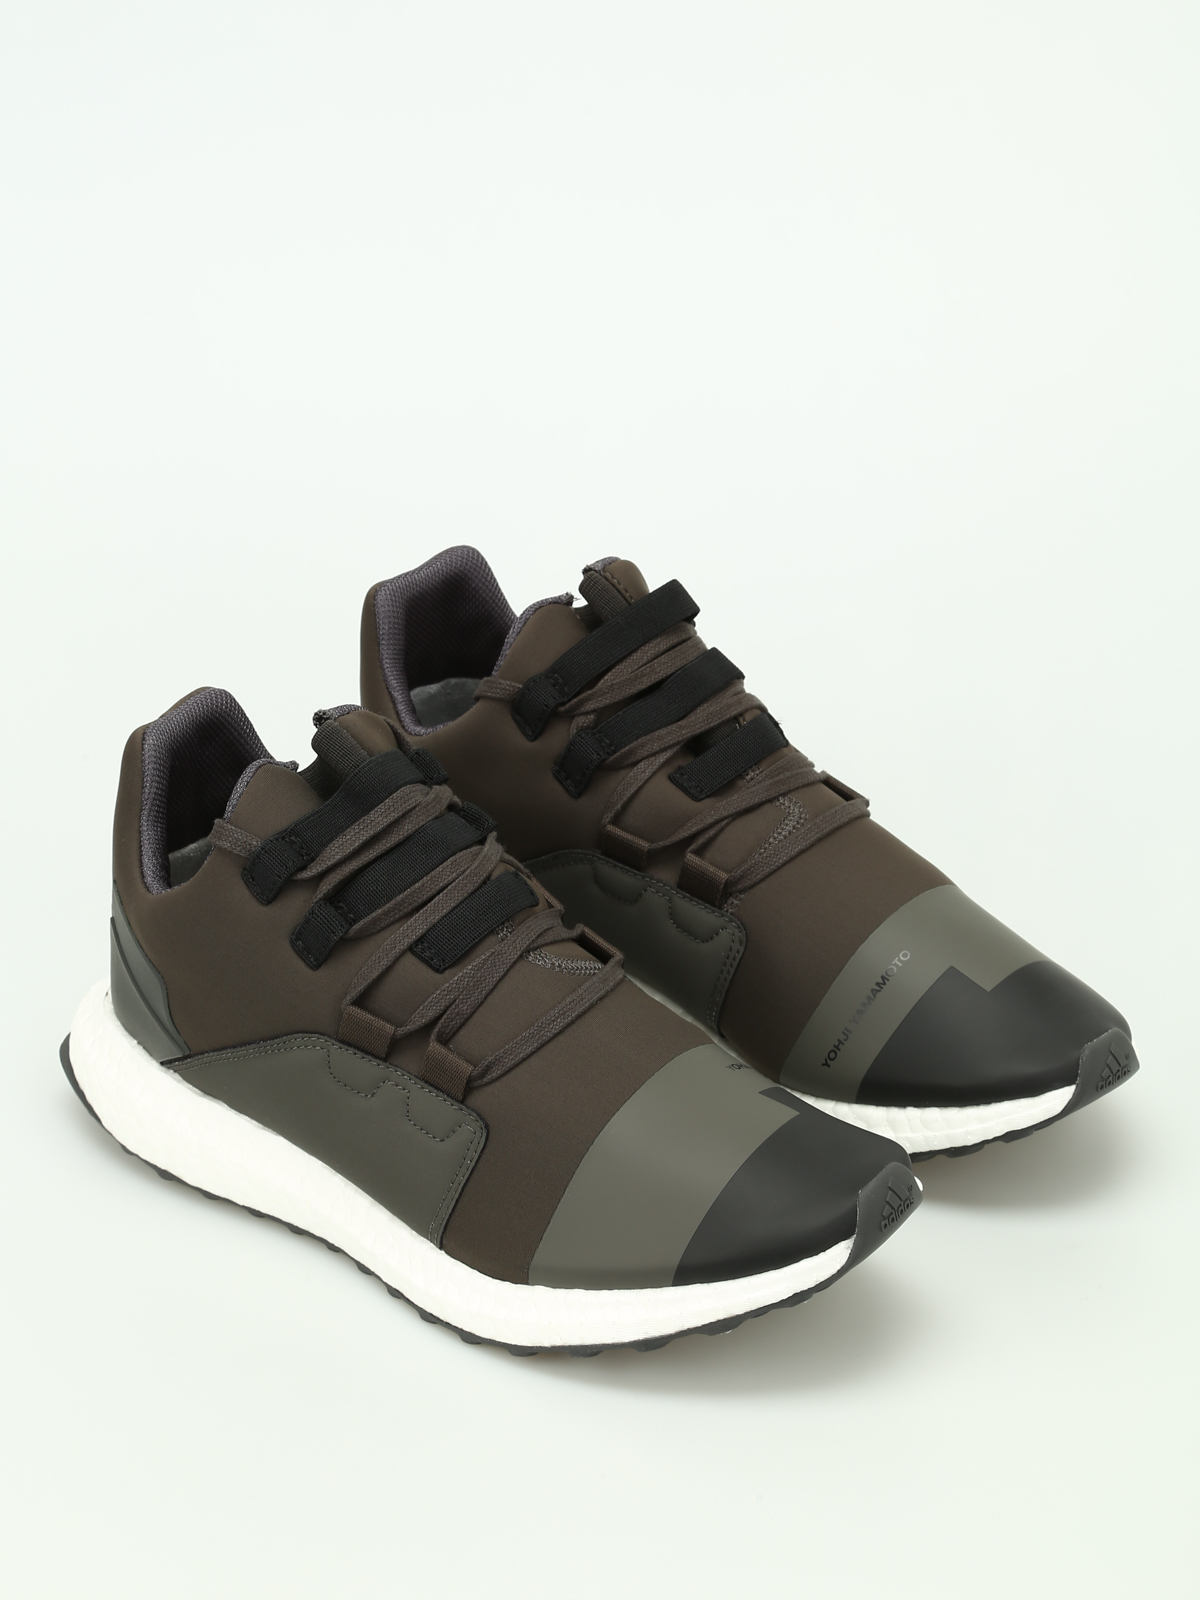 714ccc01e6c8 Adidas Y-3 - Kozoko Low scuba sneakers - trainers - CG3161